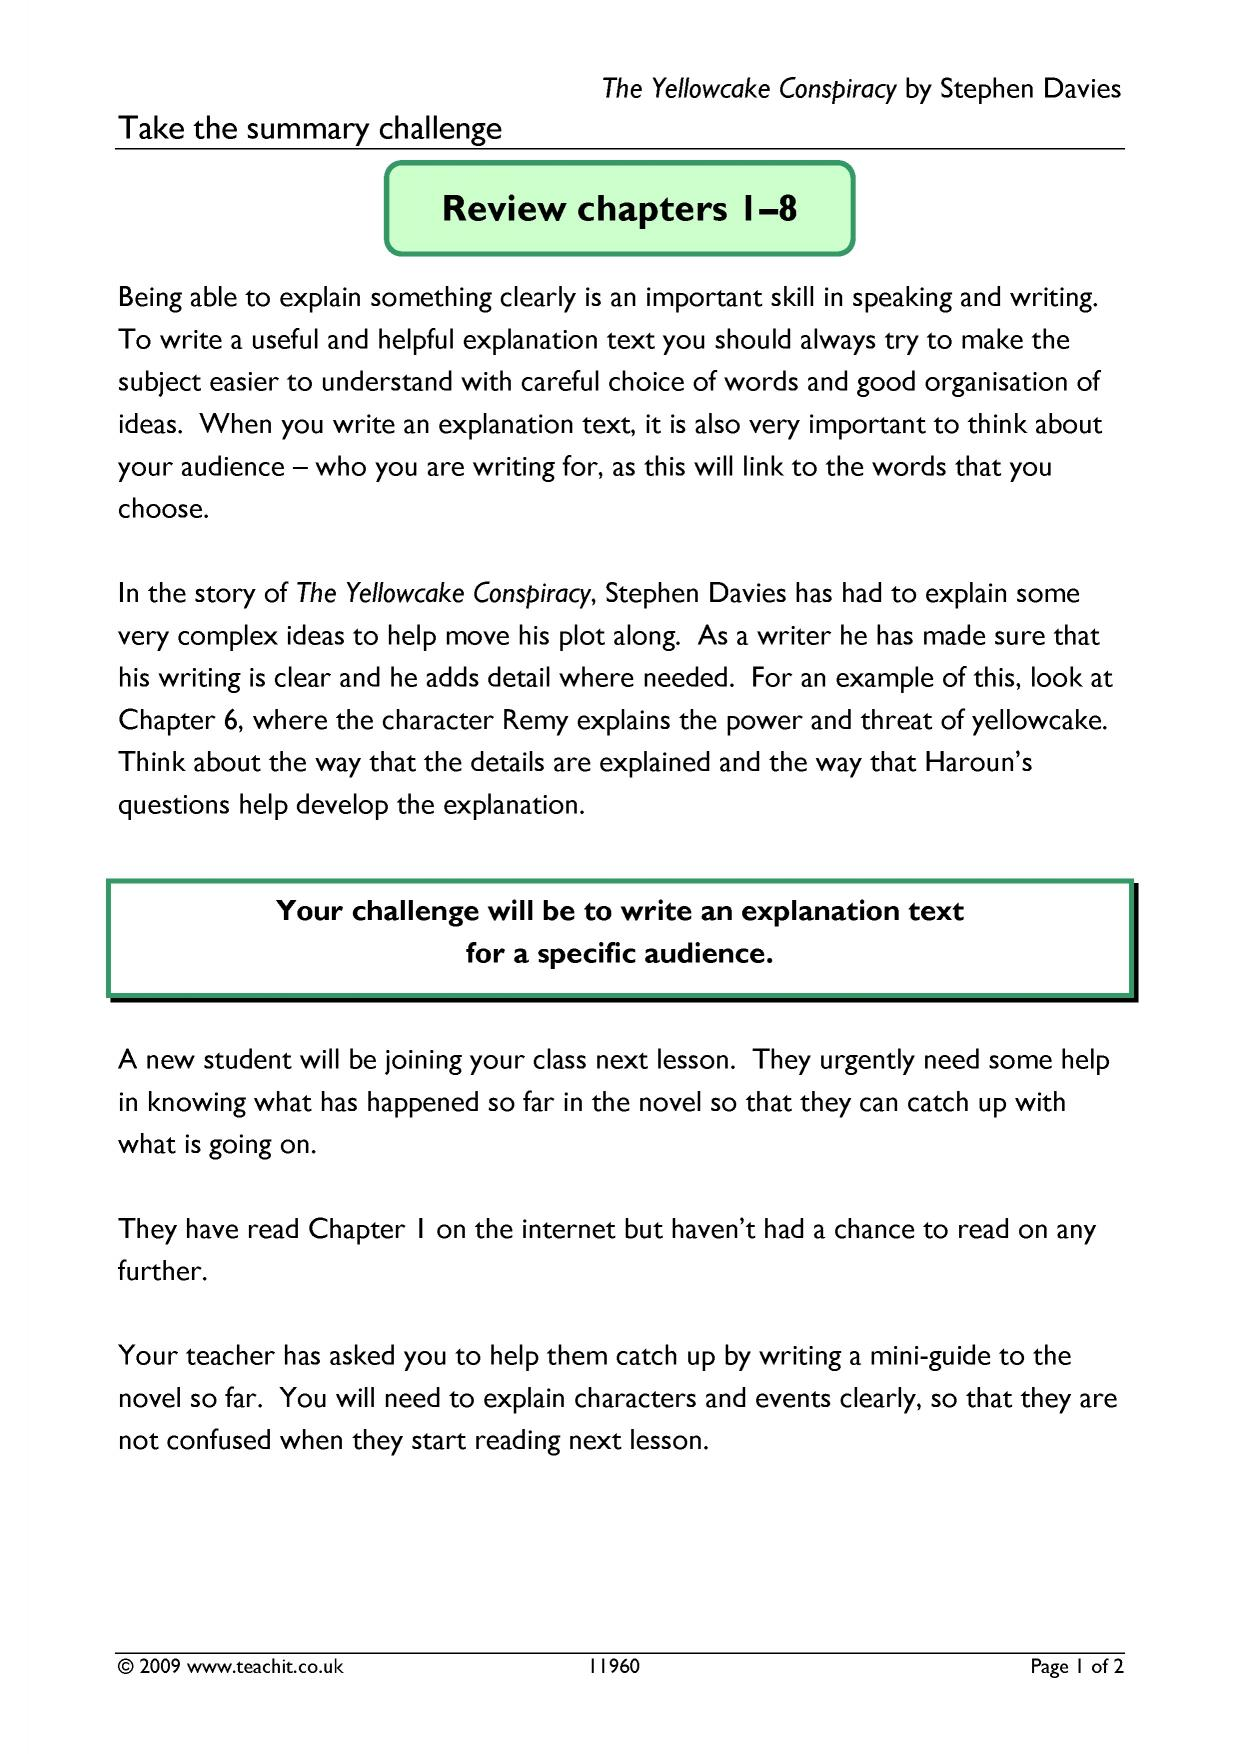 quotation bombs essay research paper citations